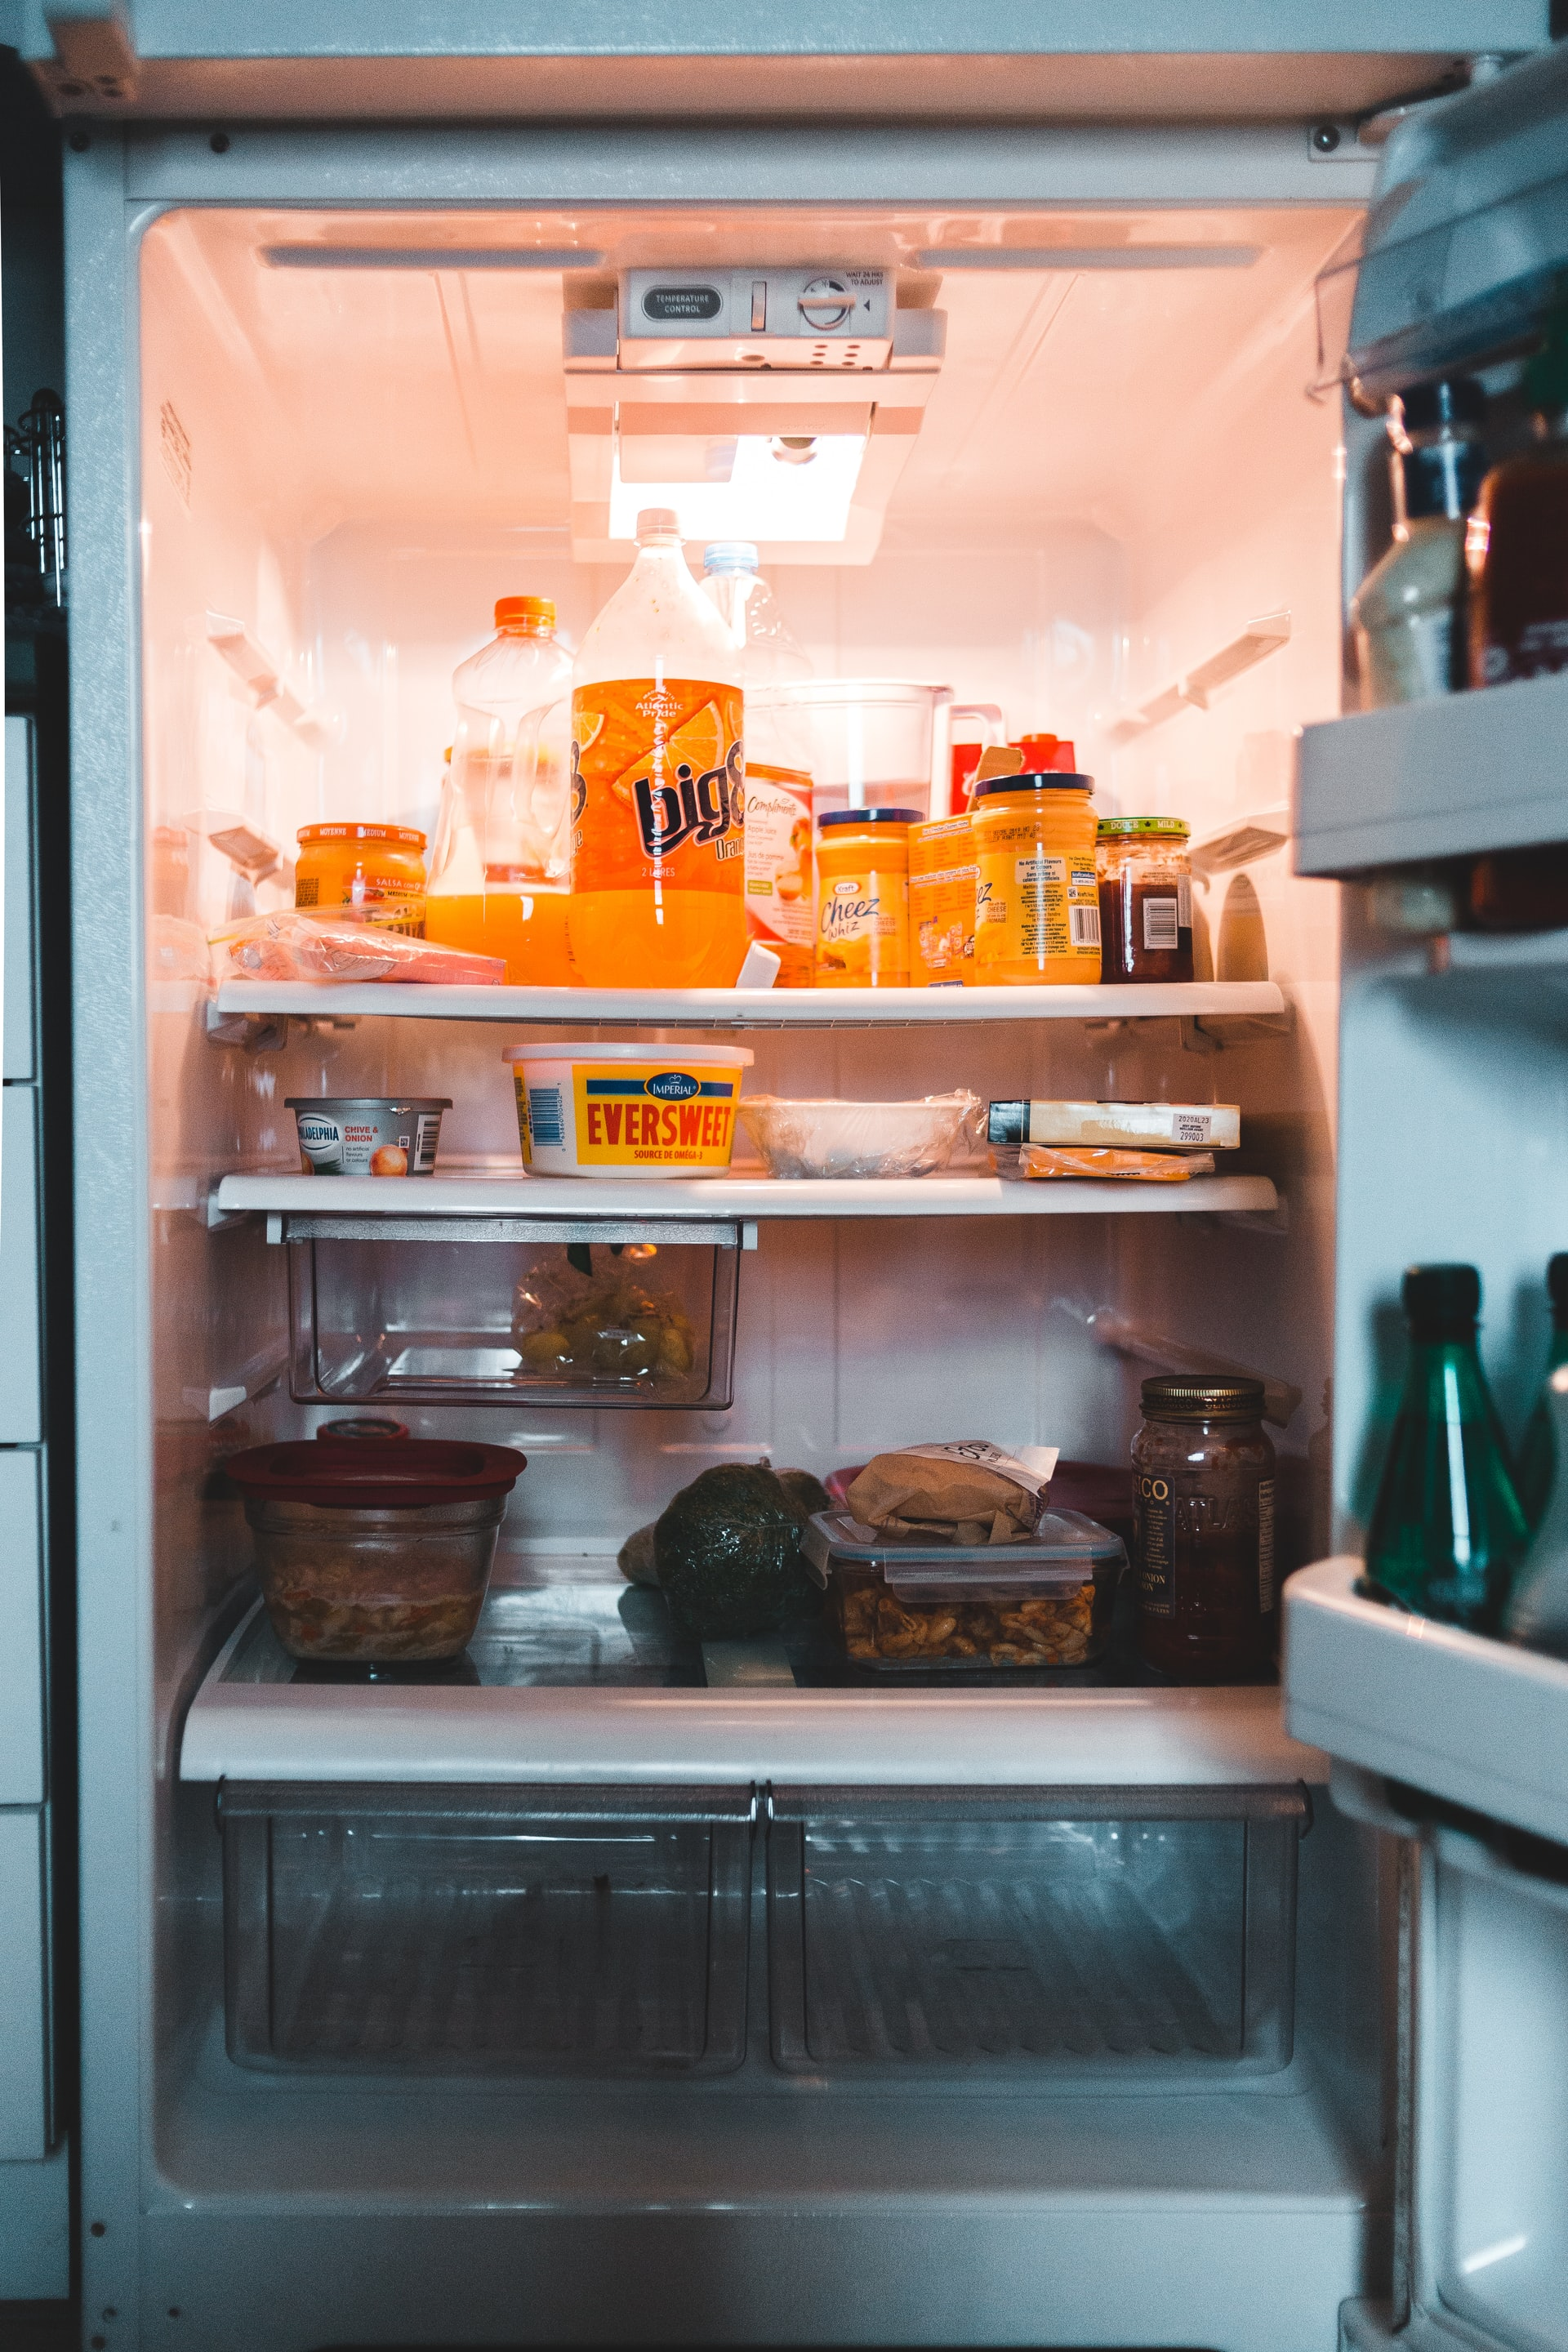 Simple Steps To Clean Your Refrigerator Coils